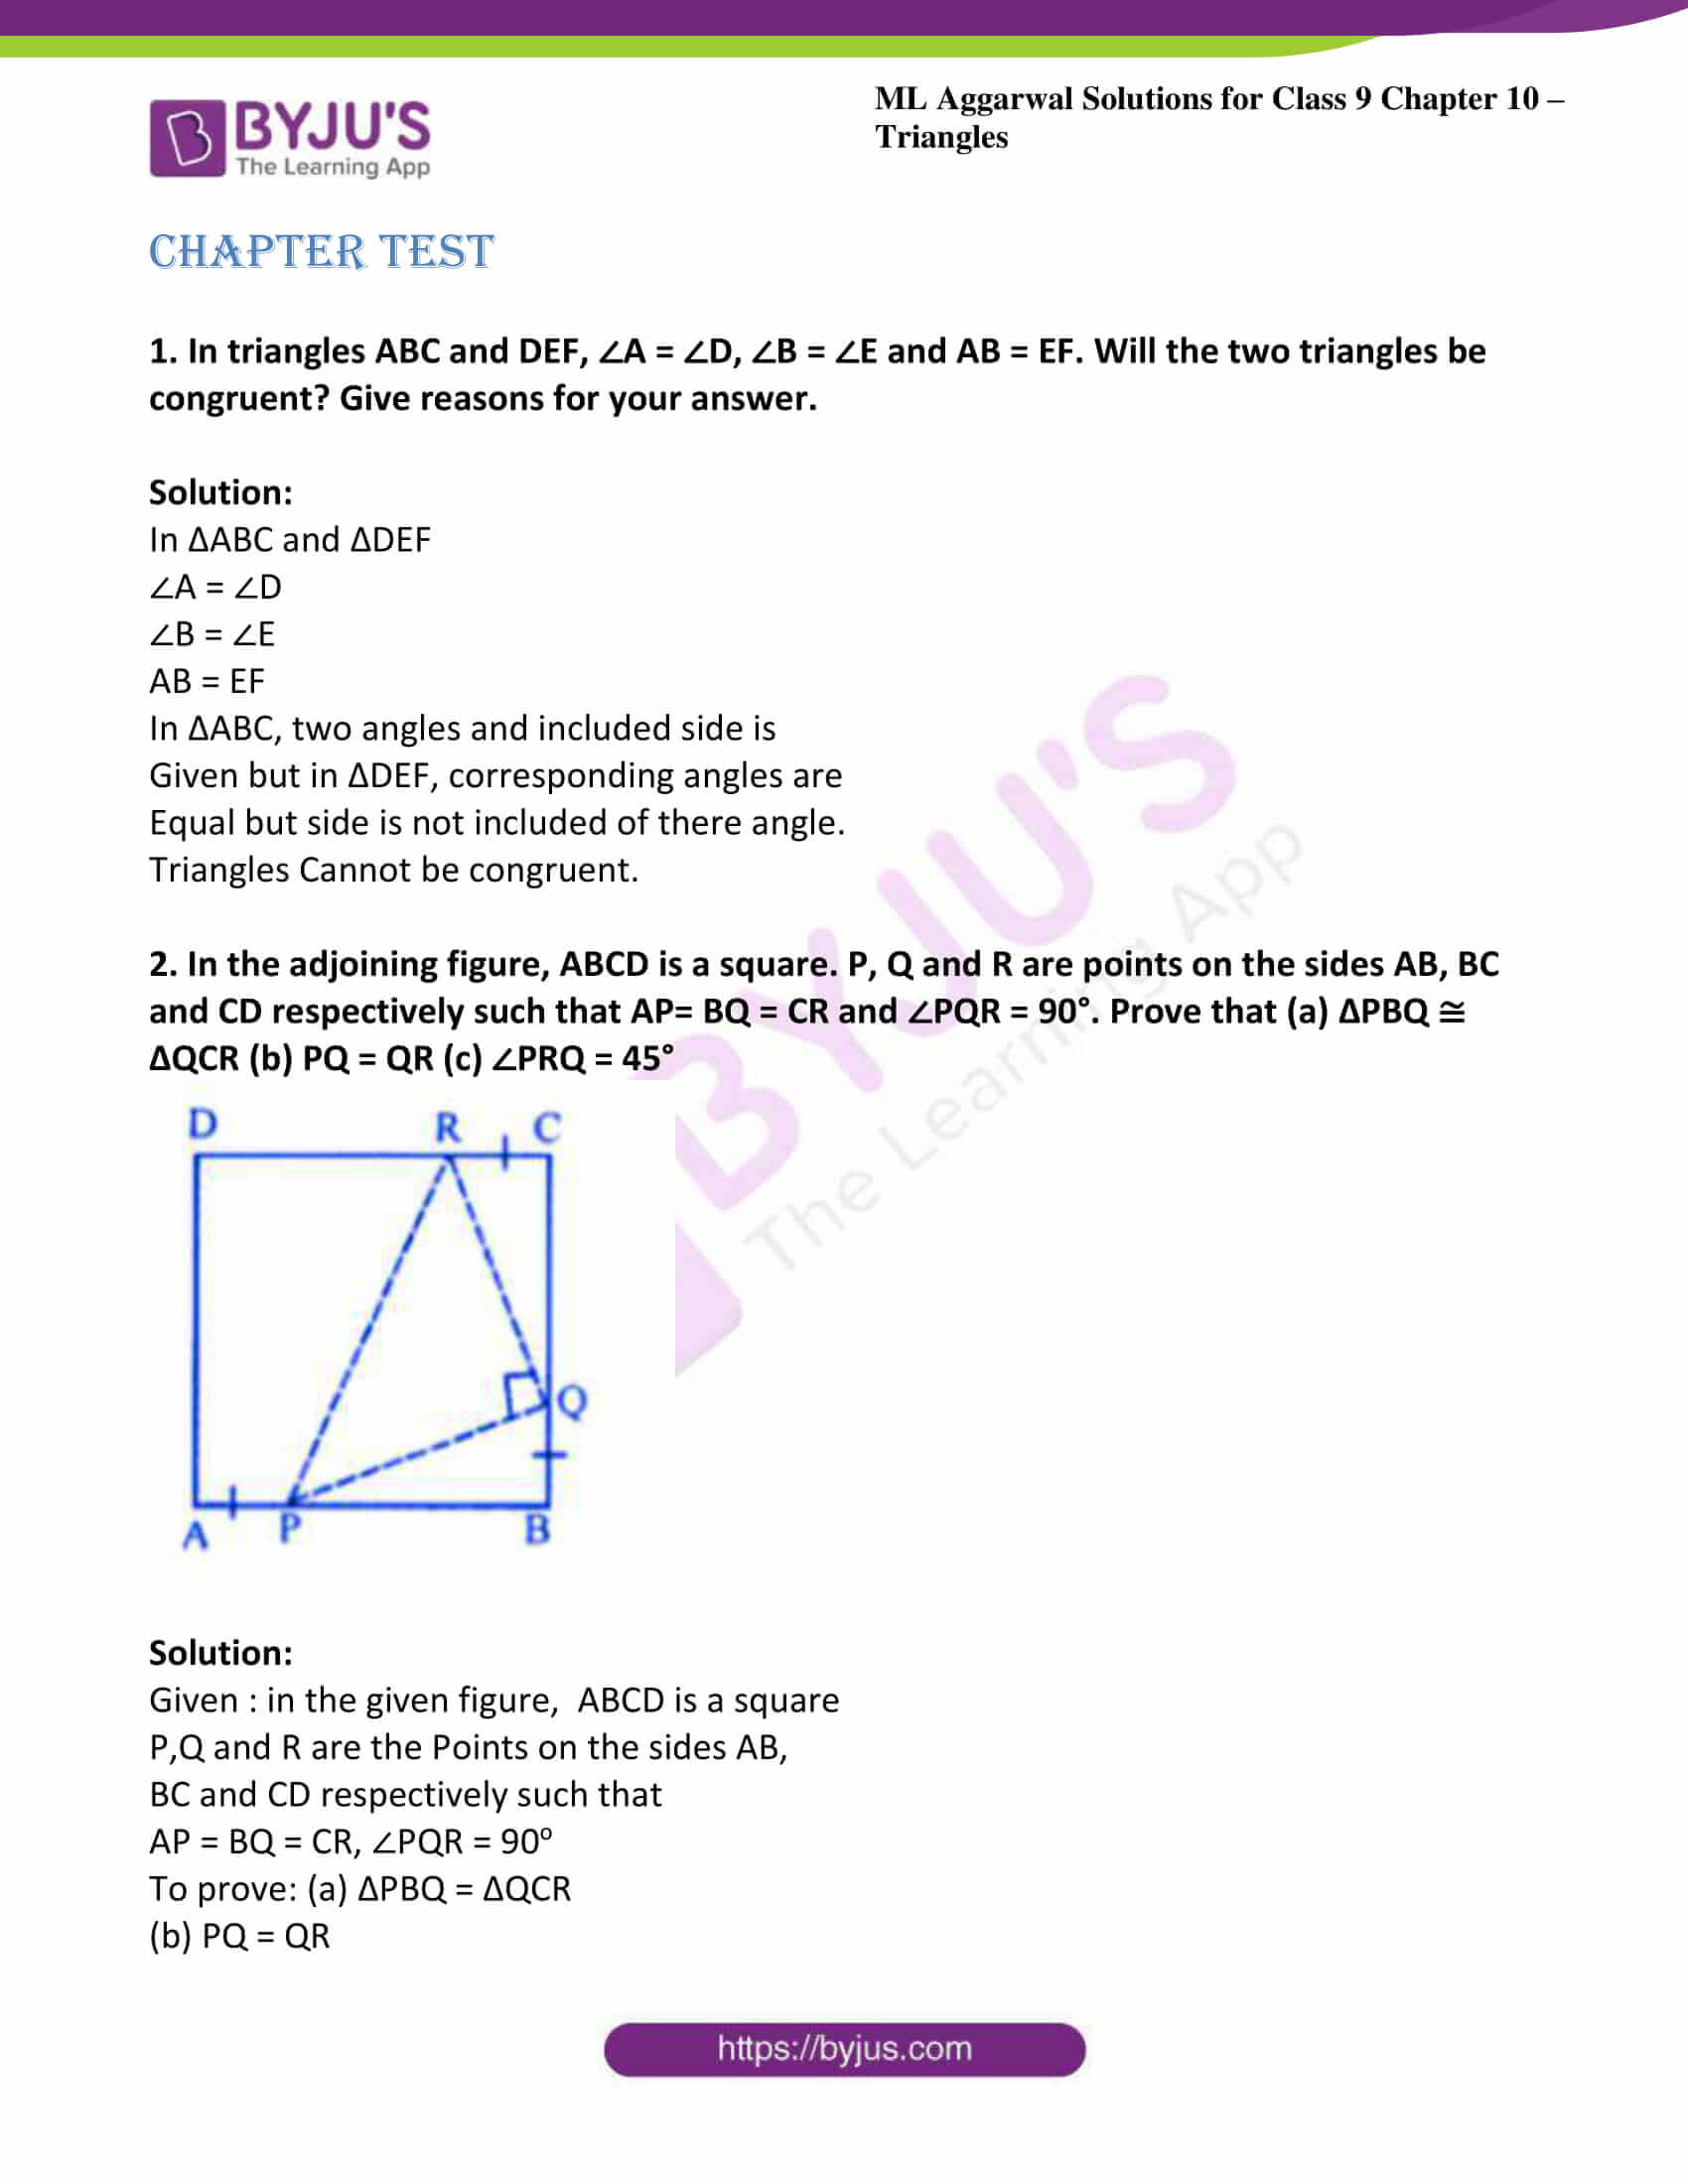 ml aggarwal solutions for class 9 maths chapter 10 28